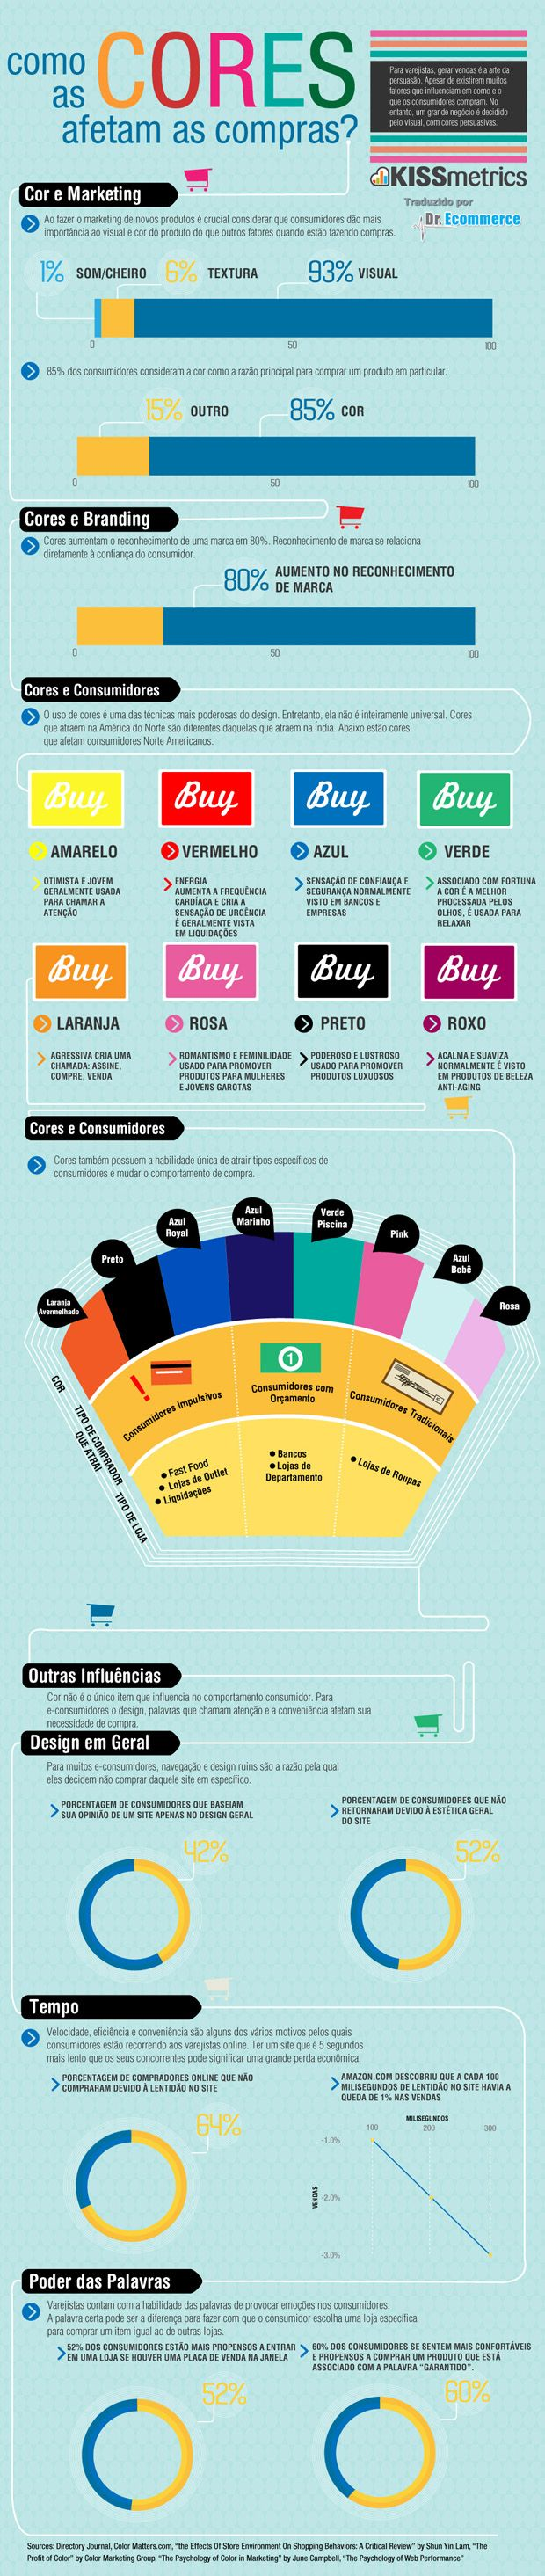 Como as cores afetam as compras #marketing